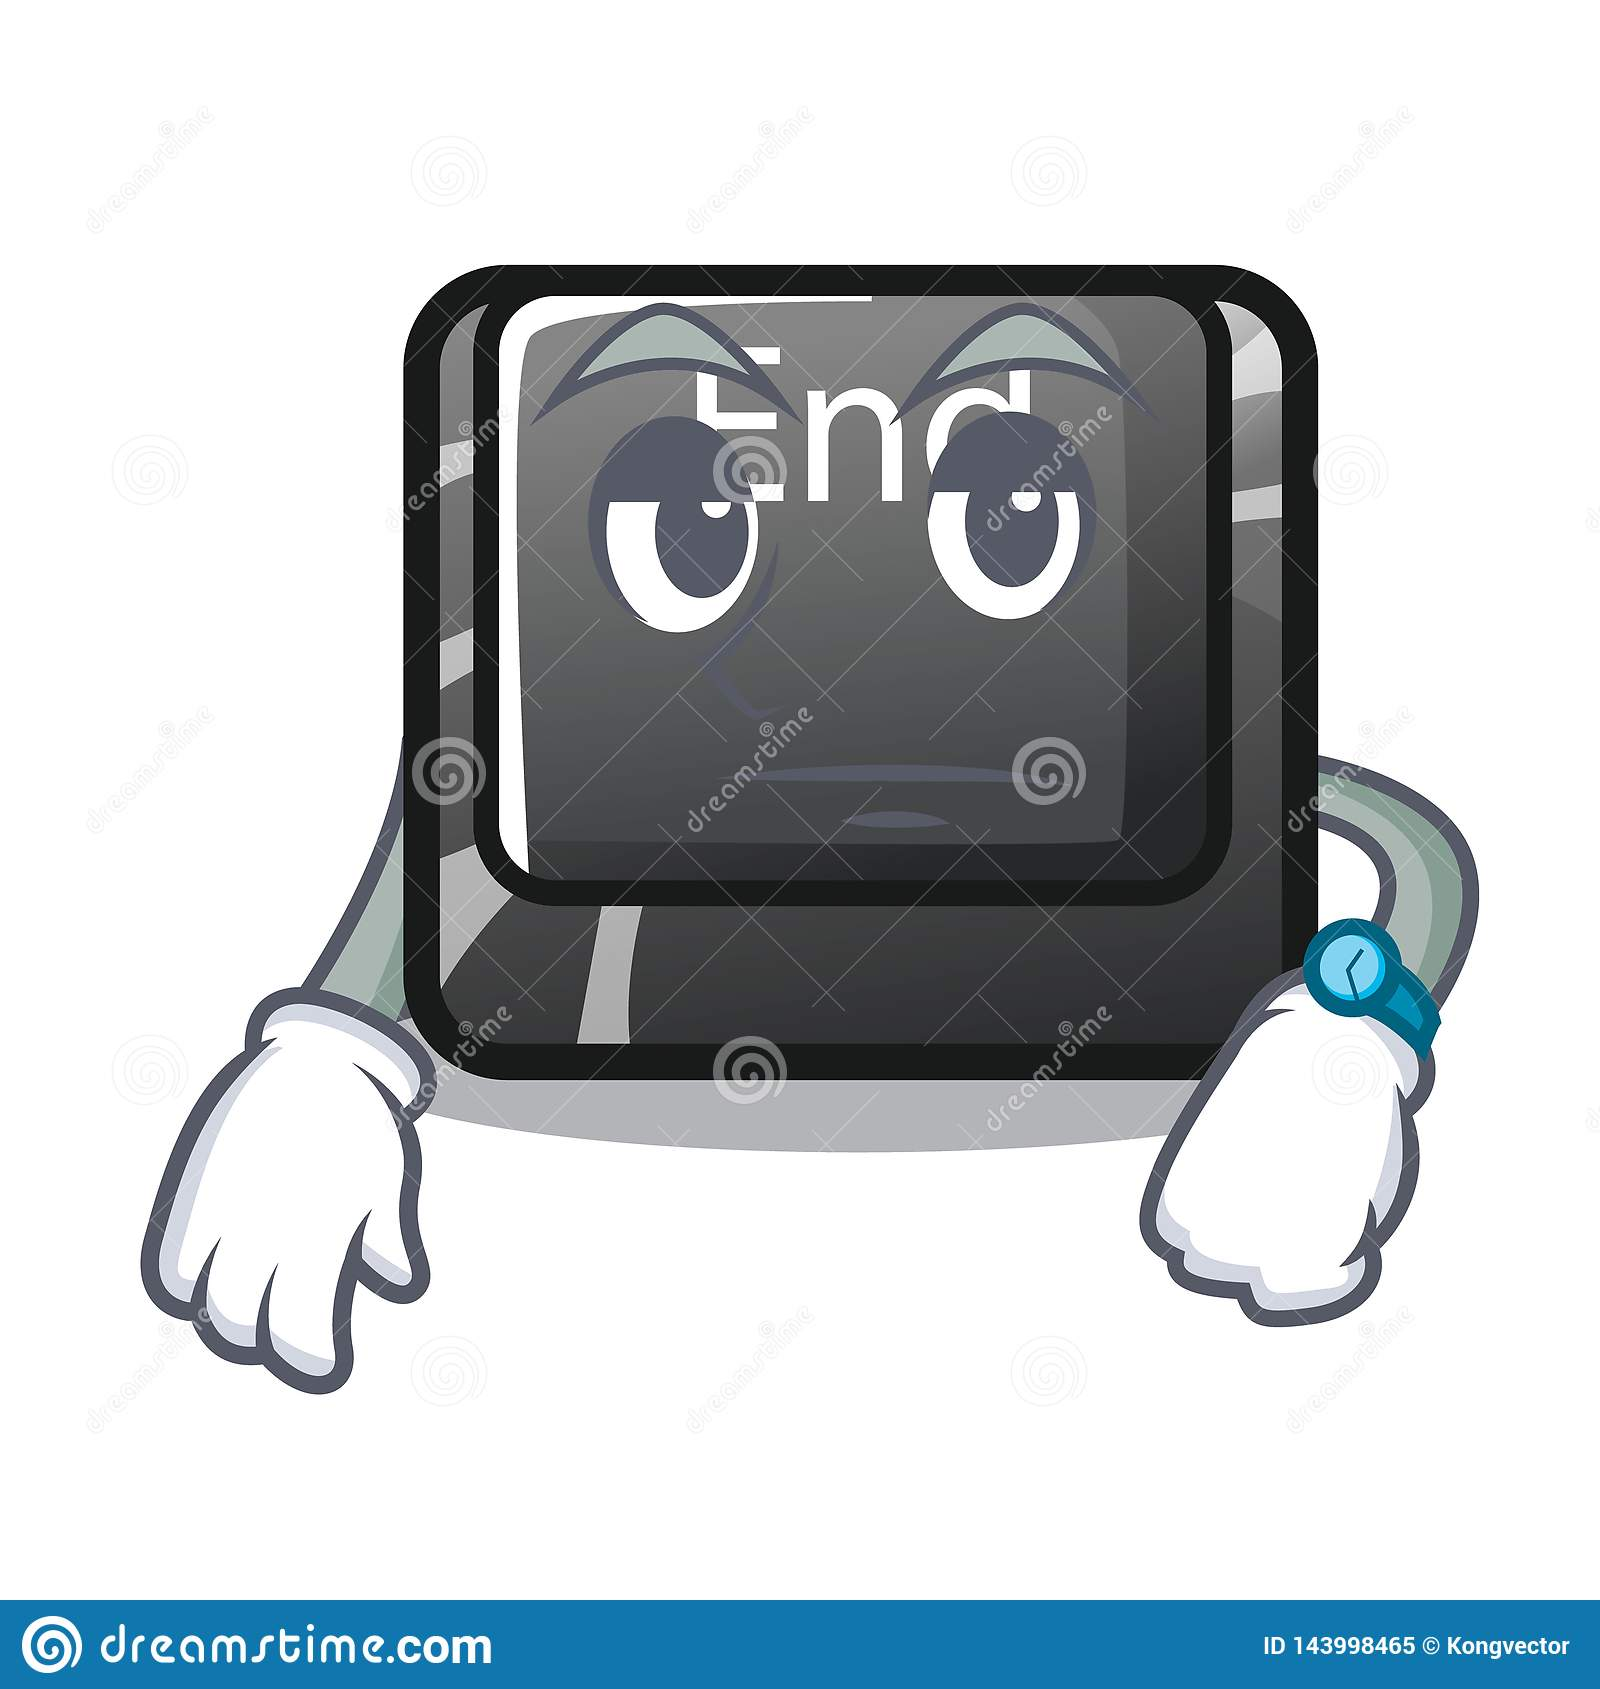 Waiting end button located on cartoon keyboard